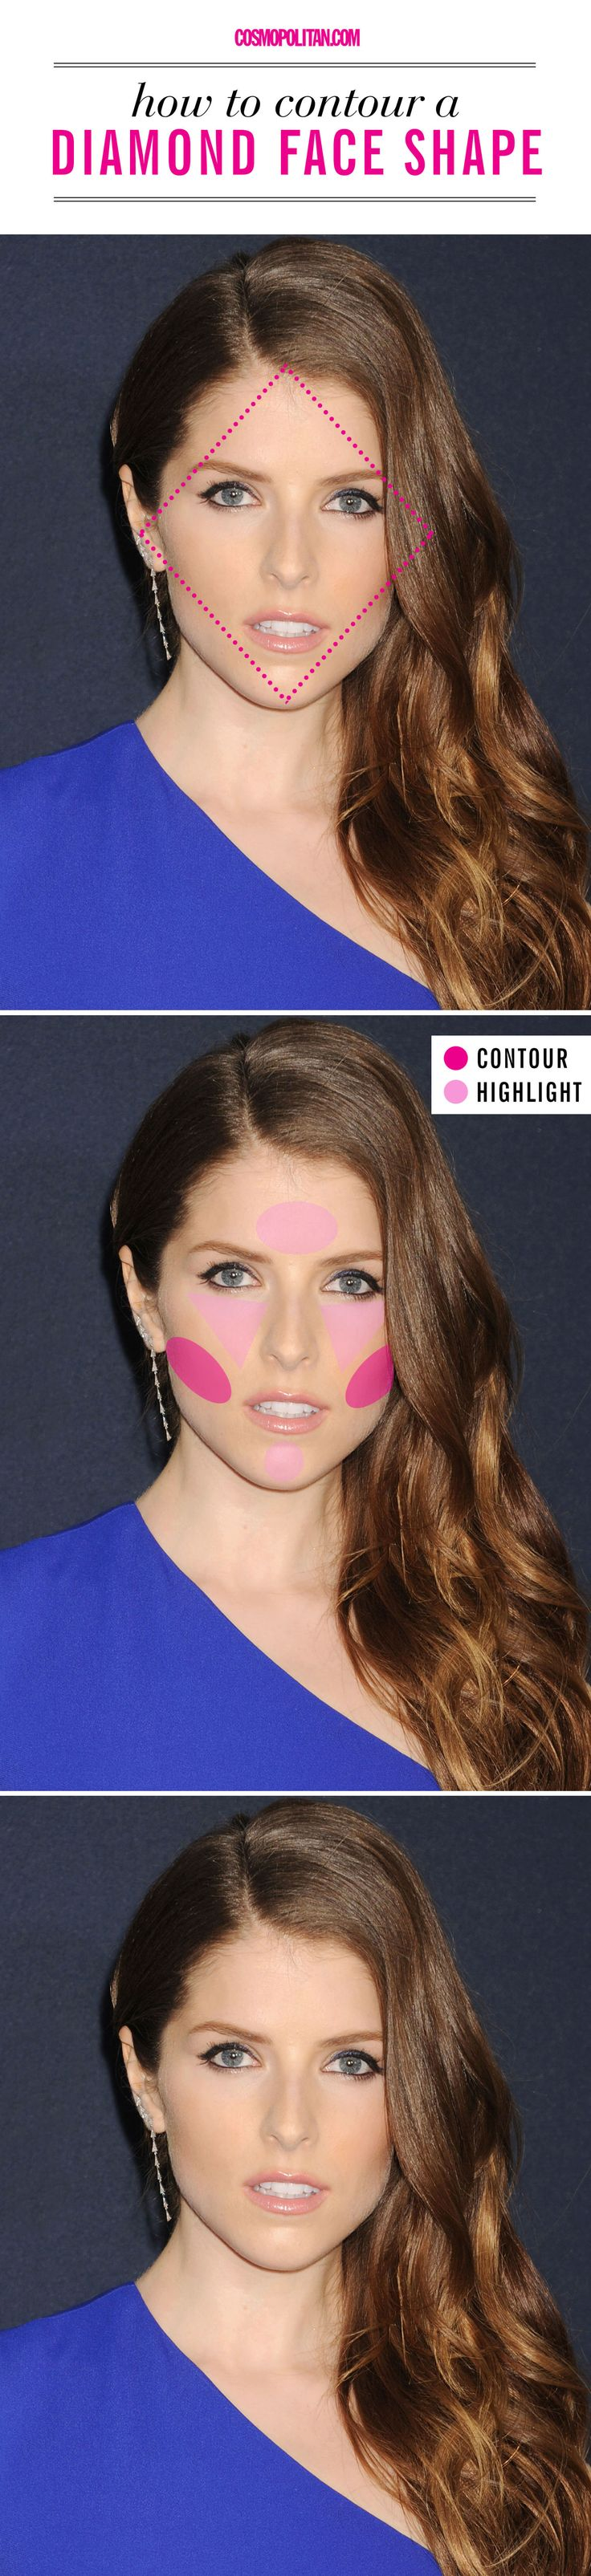 How to contour if you have a diamond face shape.